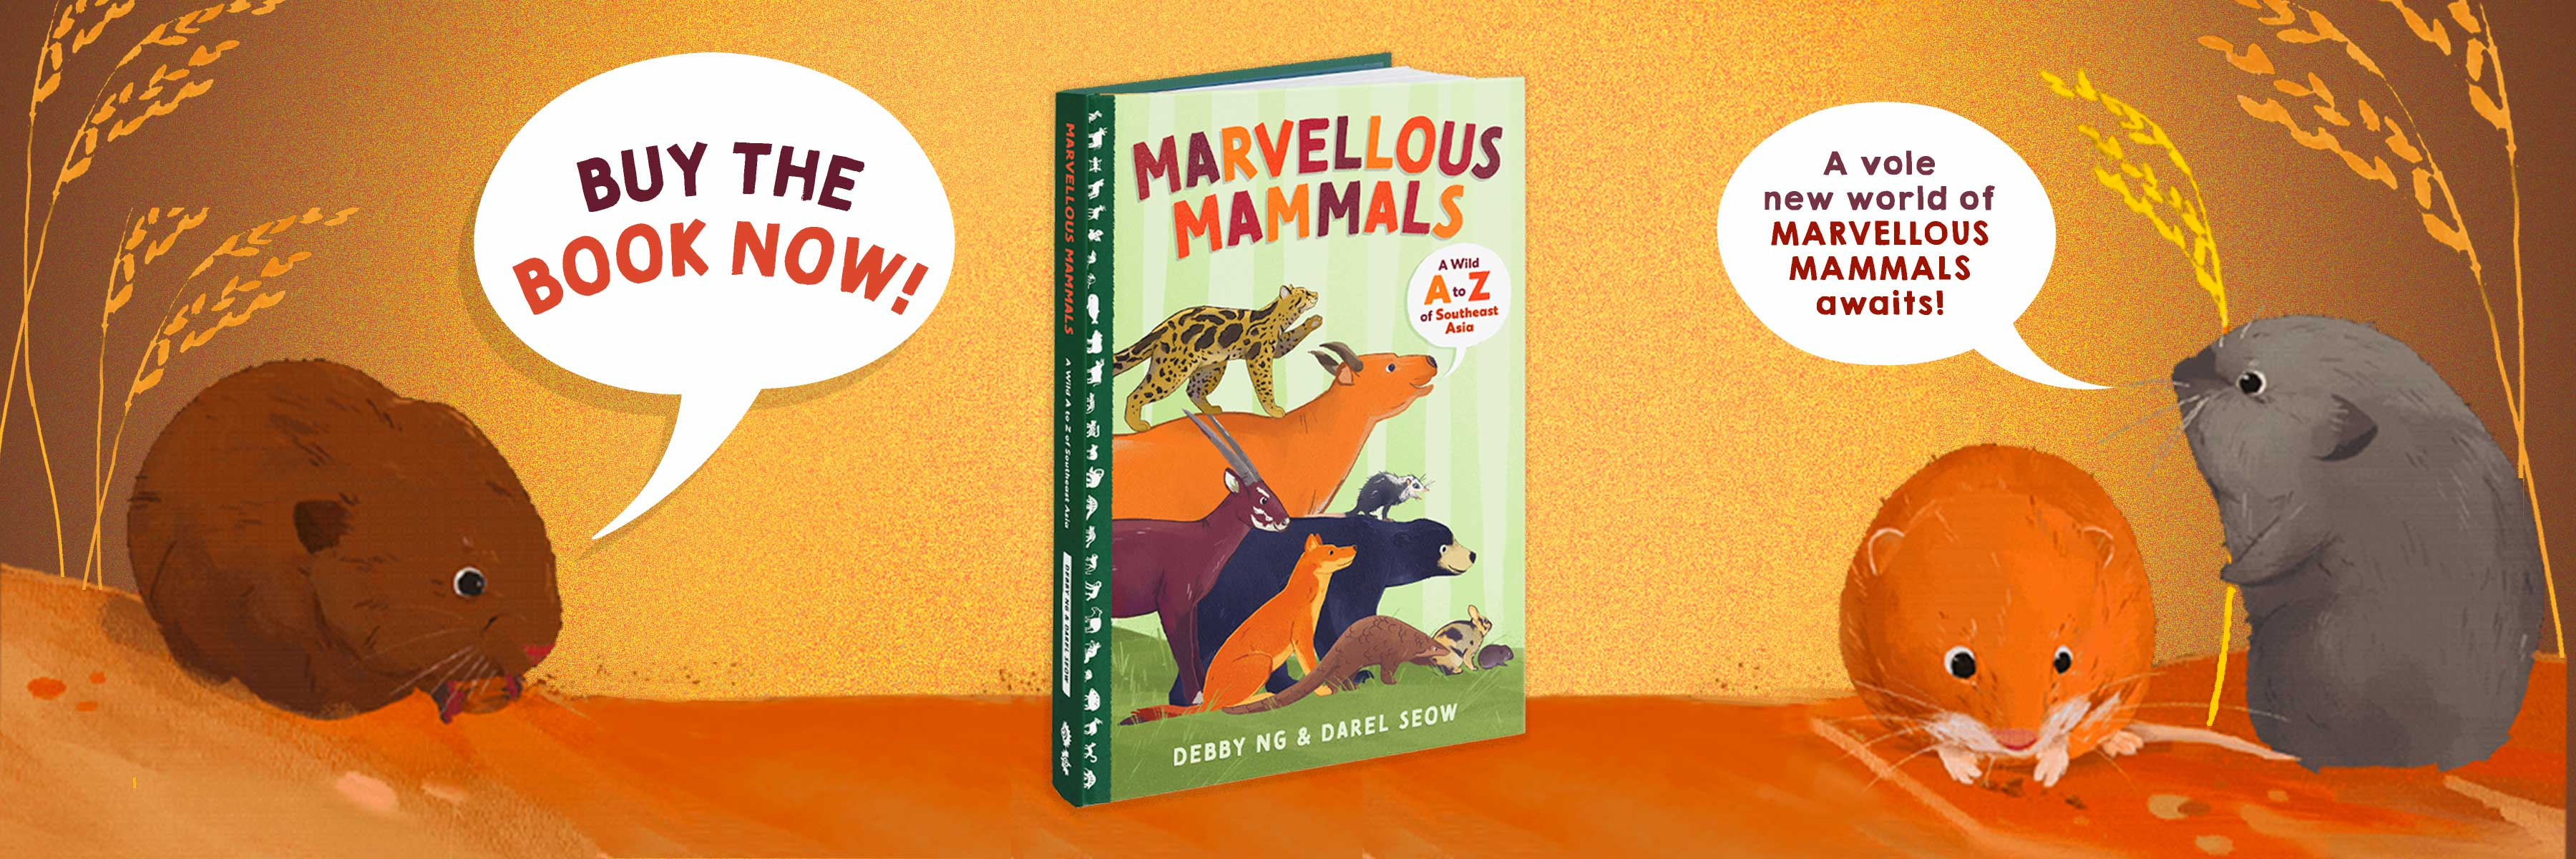 Marvellous Mammals Buy The Book Now